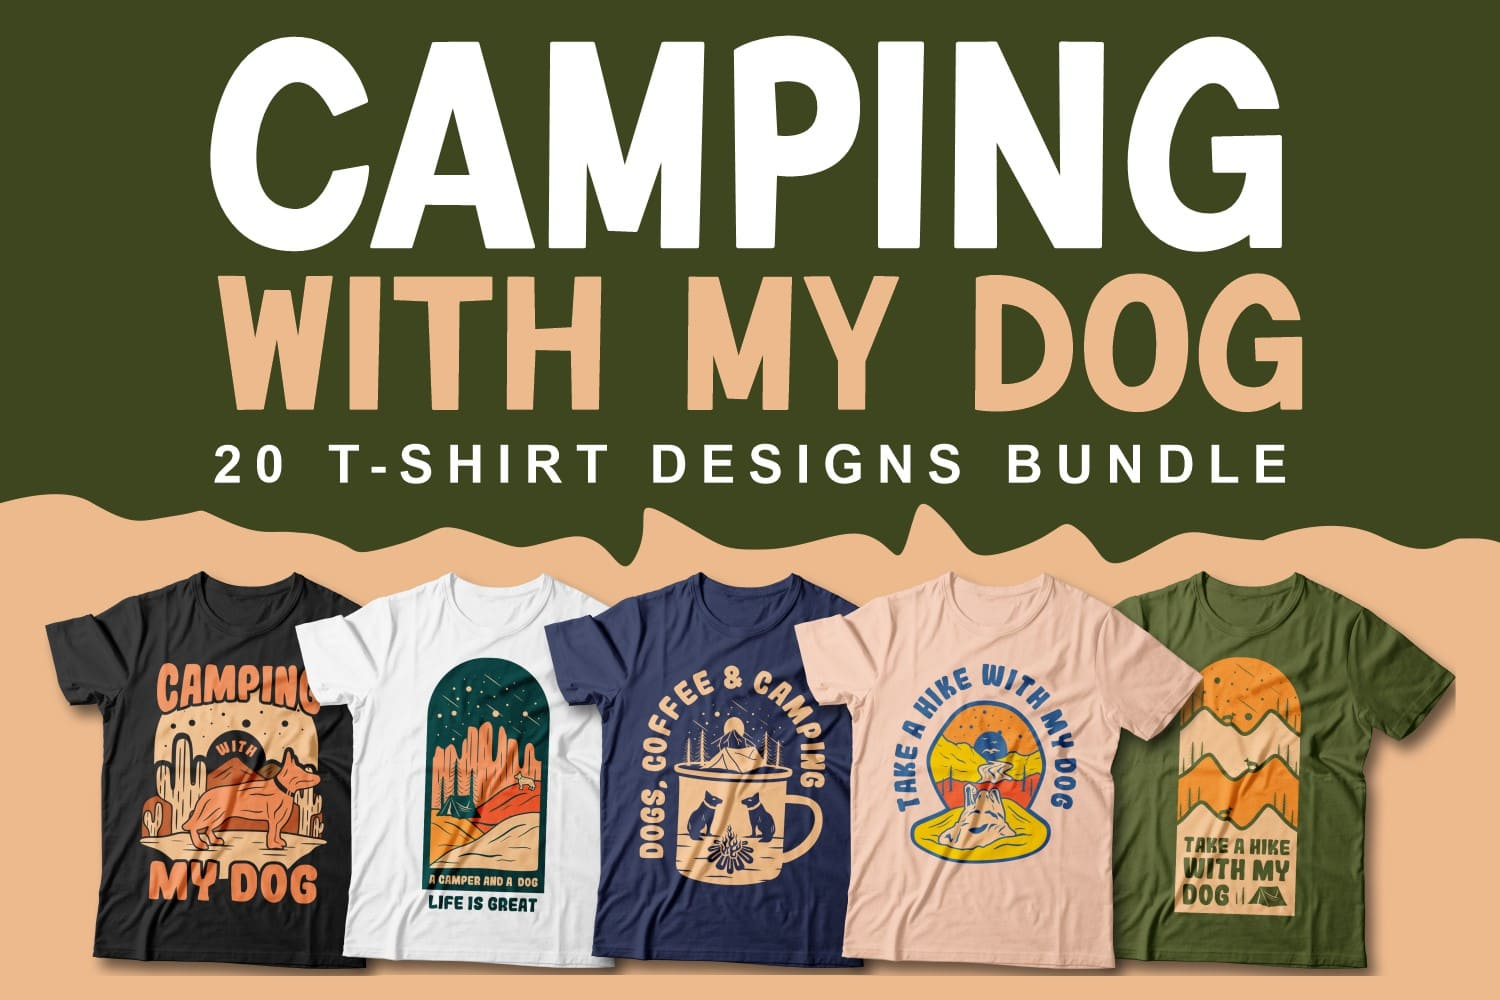 Camping with My Dog Cover image for T-shirts design.